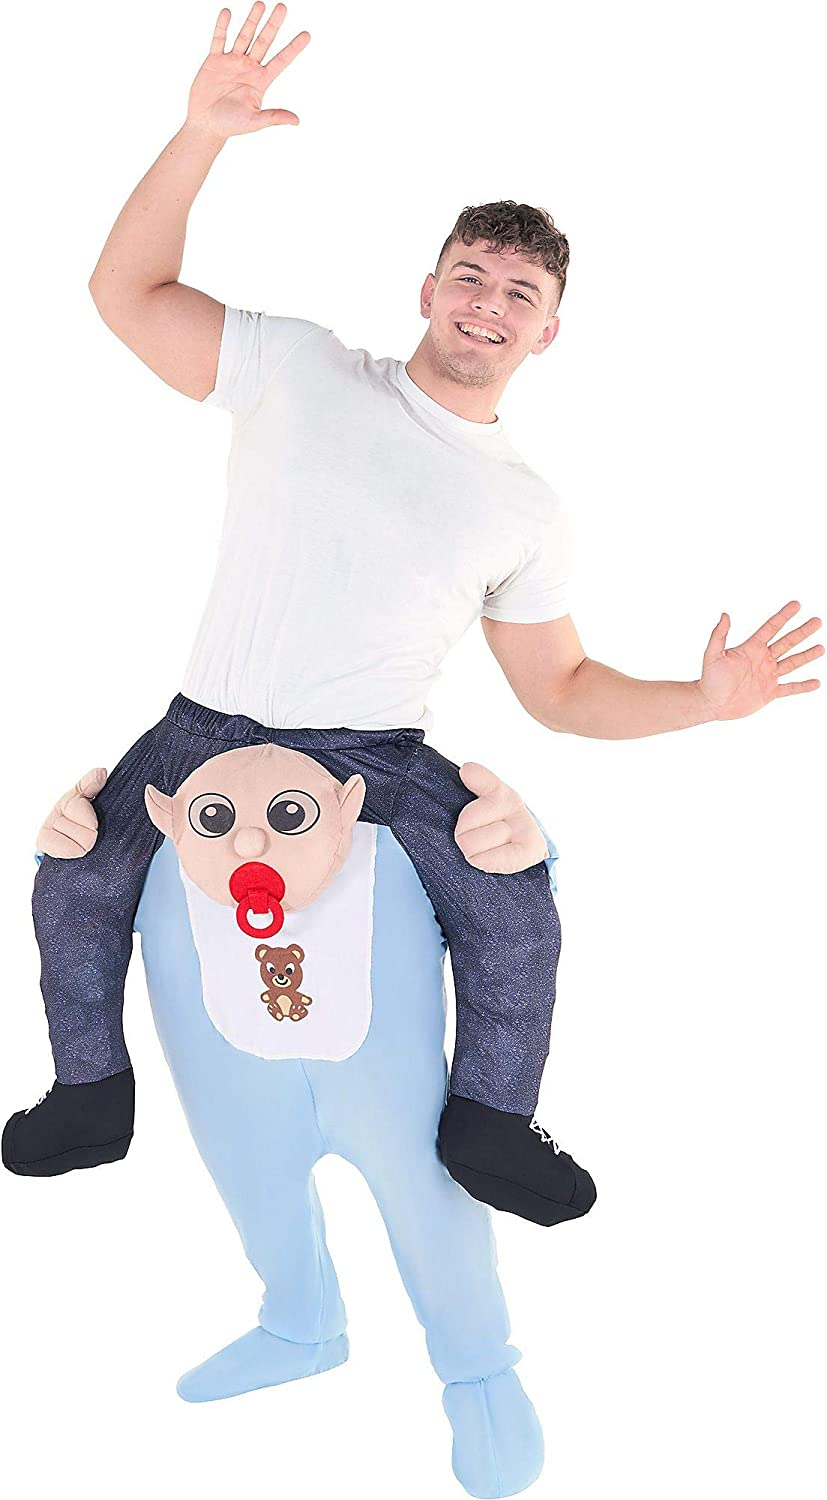 AFG Dallas Mall Media LTD Baby Ride-On Halloween One Siz Costume Very popular Adults for